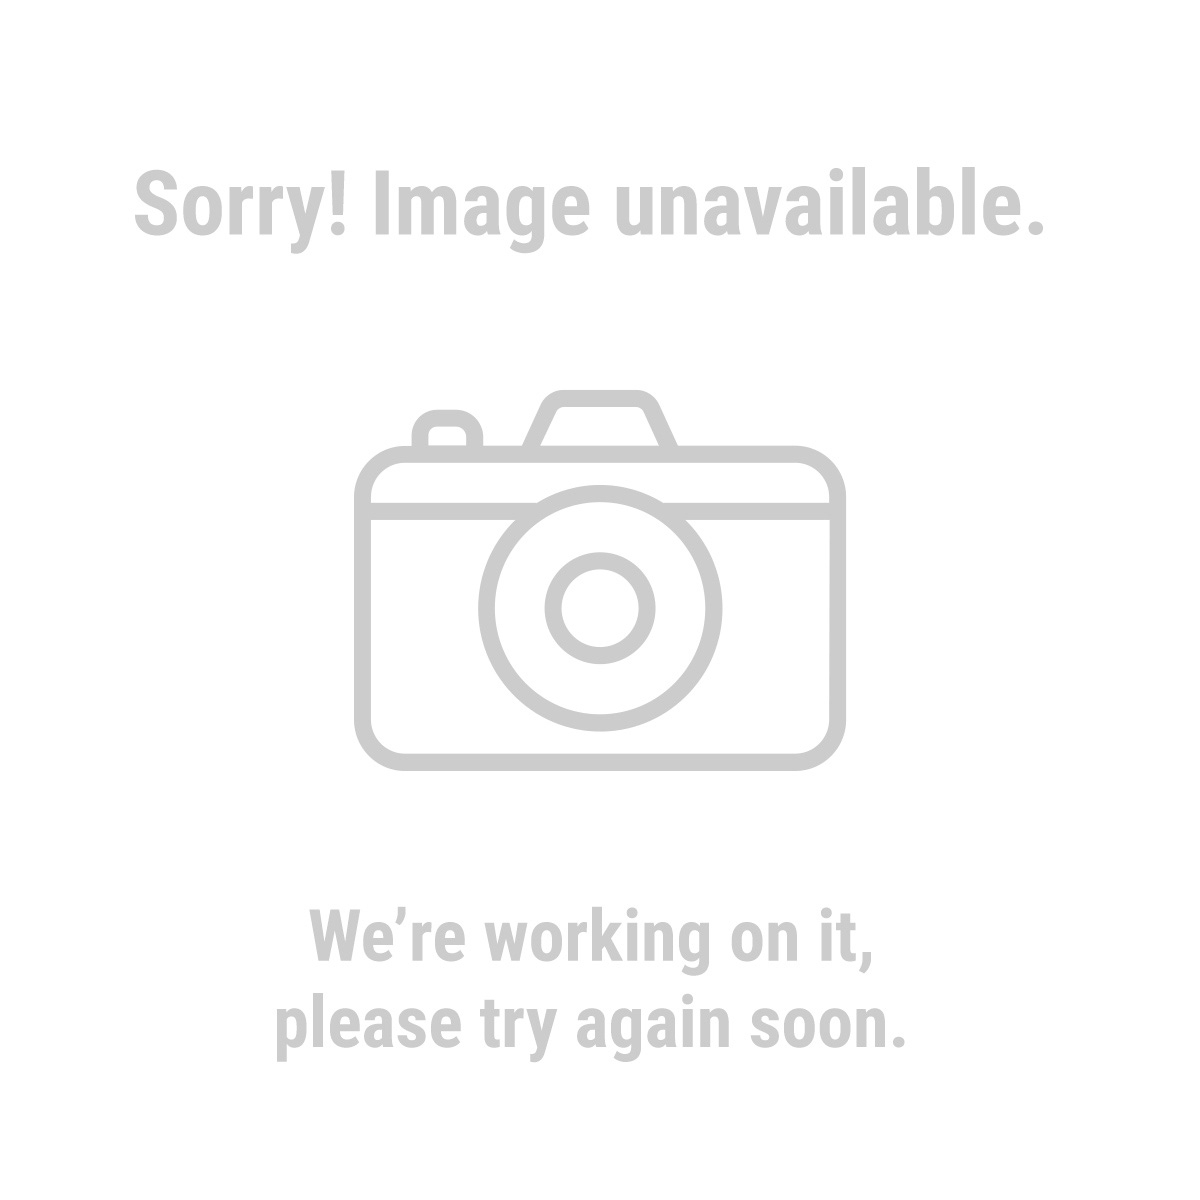 Pittsburgh Automotive 62115 4 ton Heavy Duty Portable Hydraulic Equipment Kit